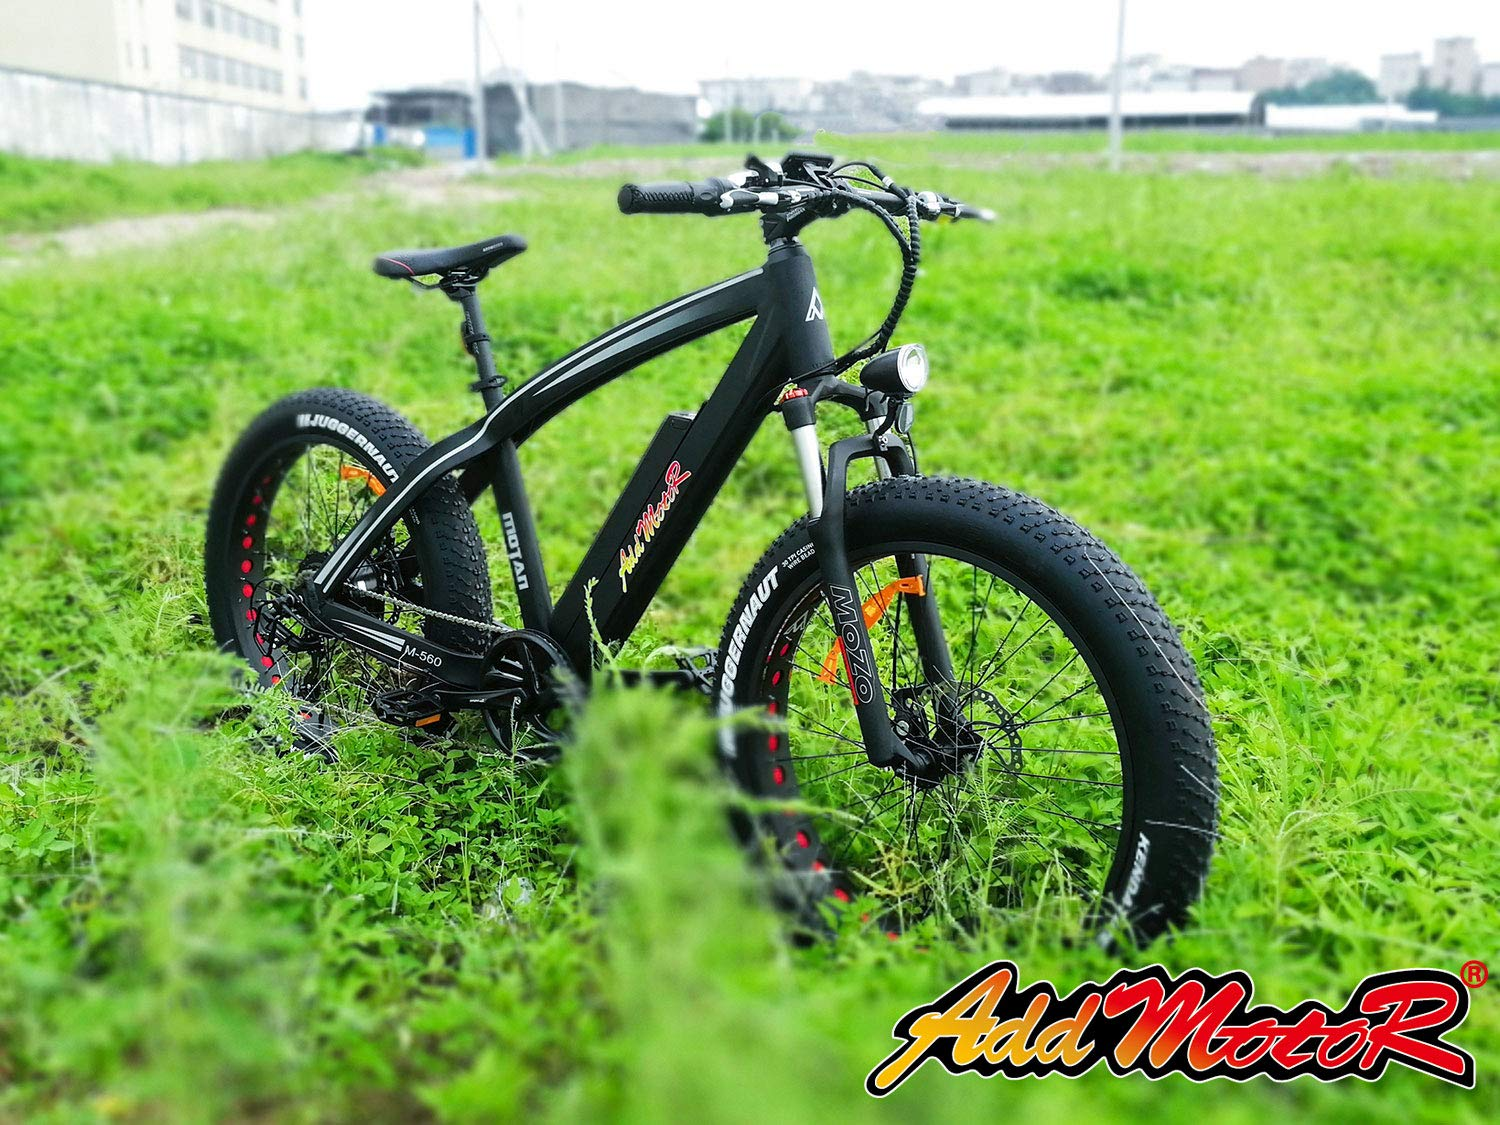 8b40d6ecc0f Amazon.com : Addmotor MOTAN Electric Bicycles Mountain Fat Tire 26 Inch 750W  Power Electric Bikes Removable 48V 11.6AH Lithium Battery M-560 P7 Ebikes  for ...